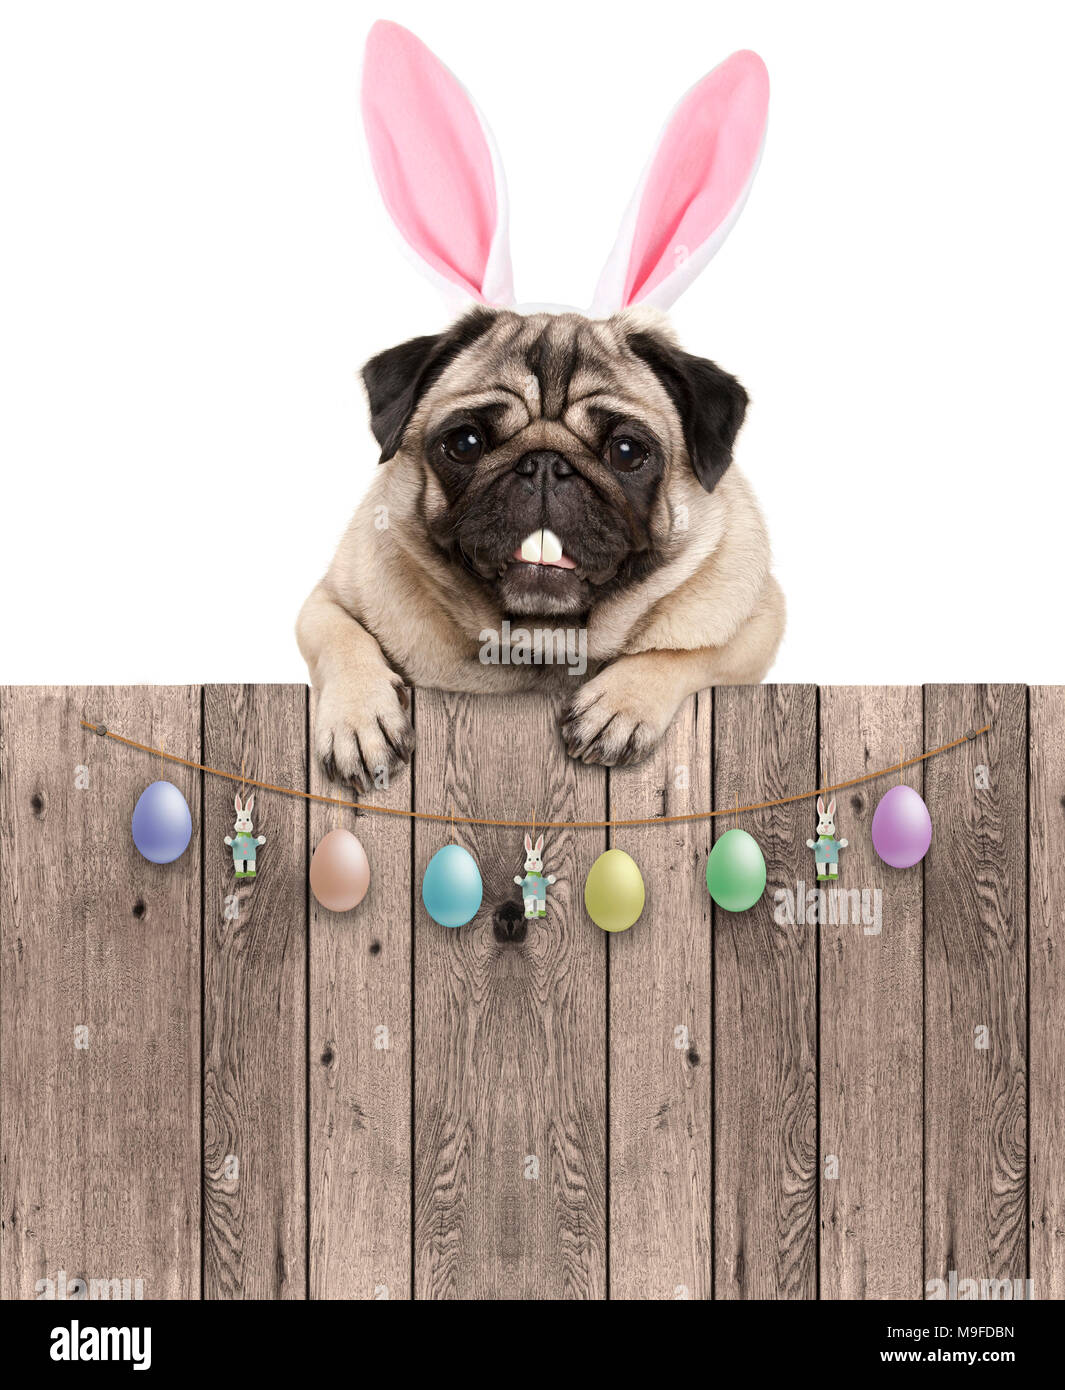 lovely pug dog with easter bunny ears diadem, hanging with paws on wooden fence with egg decoration, isolated on white background - Stock Image